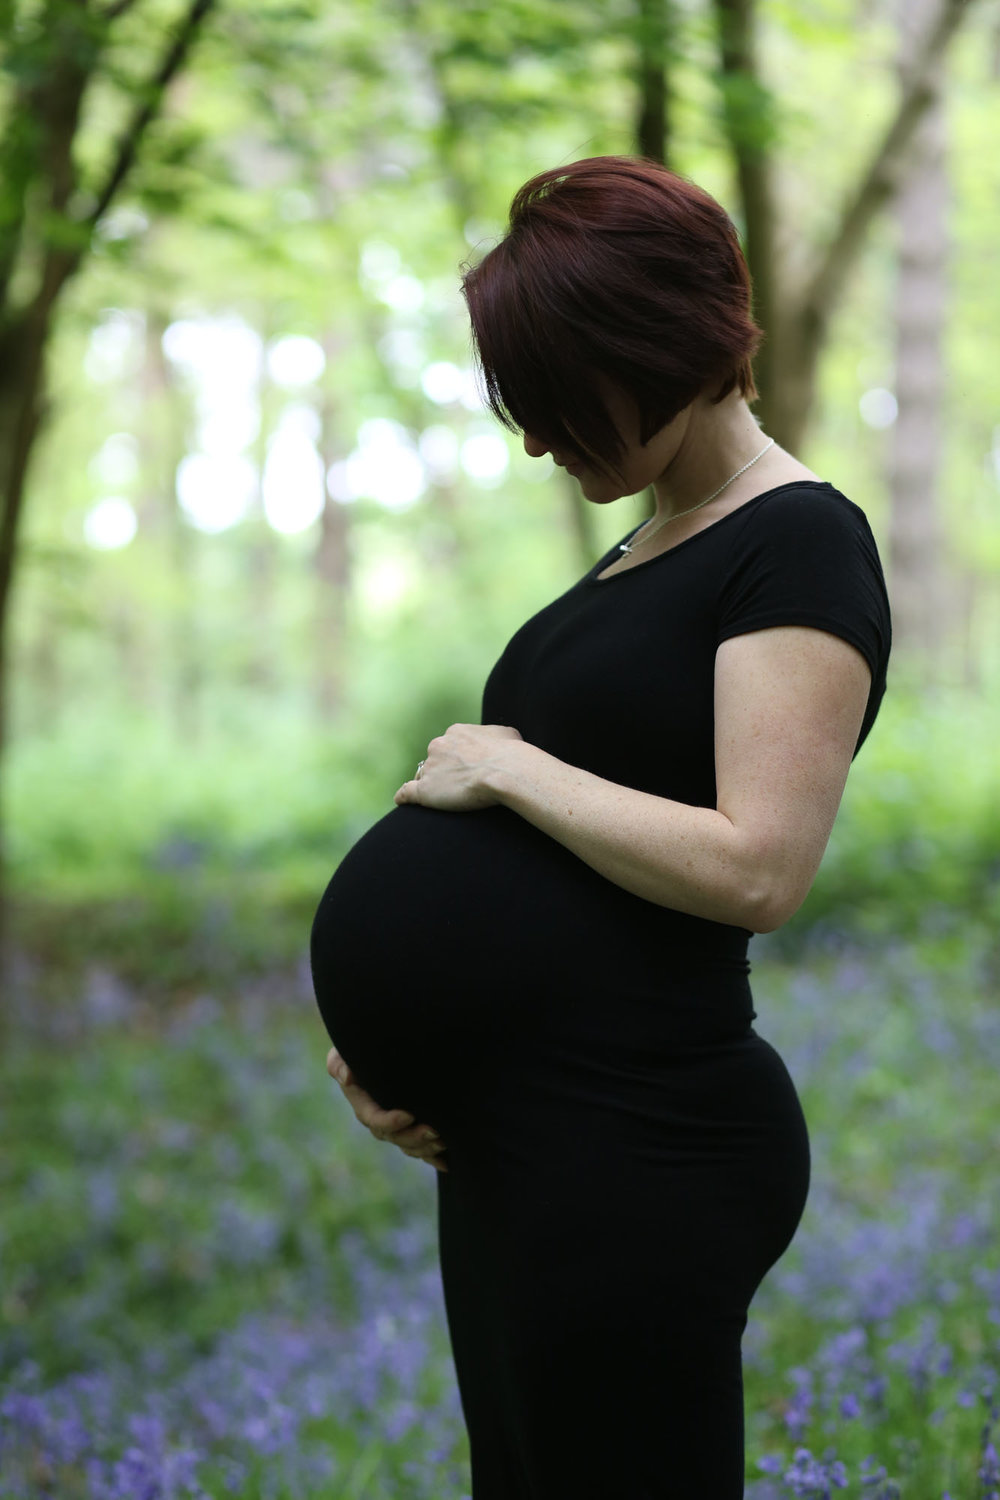 maternity-photographer-berkshire-hampshire-16.jpg